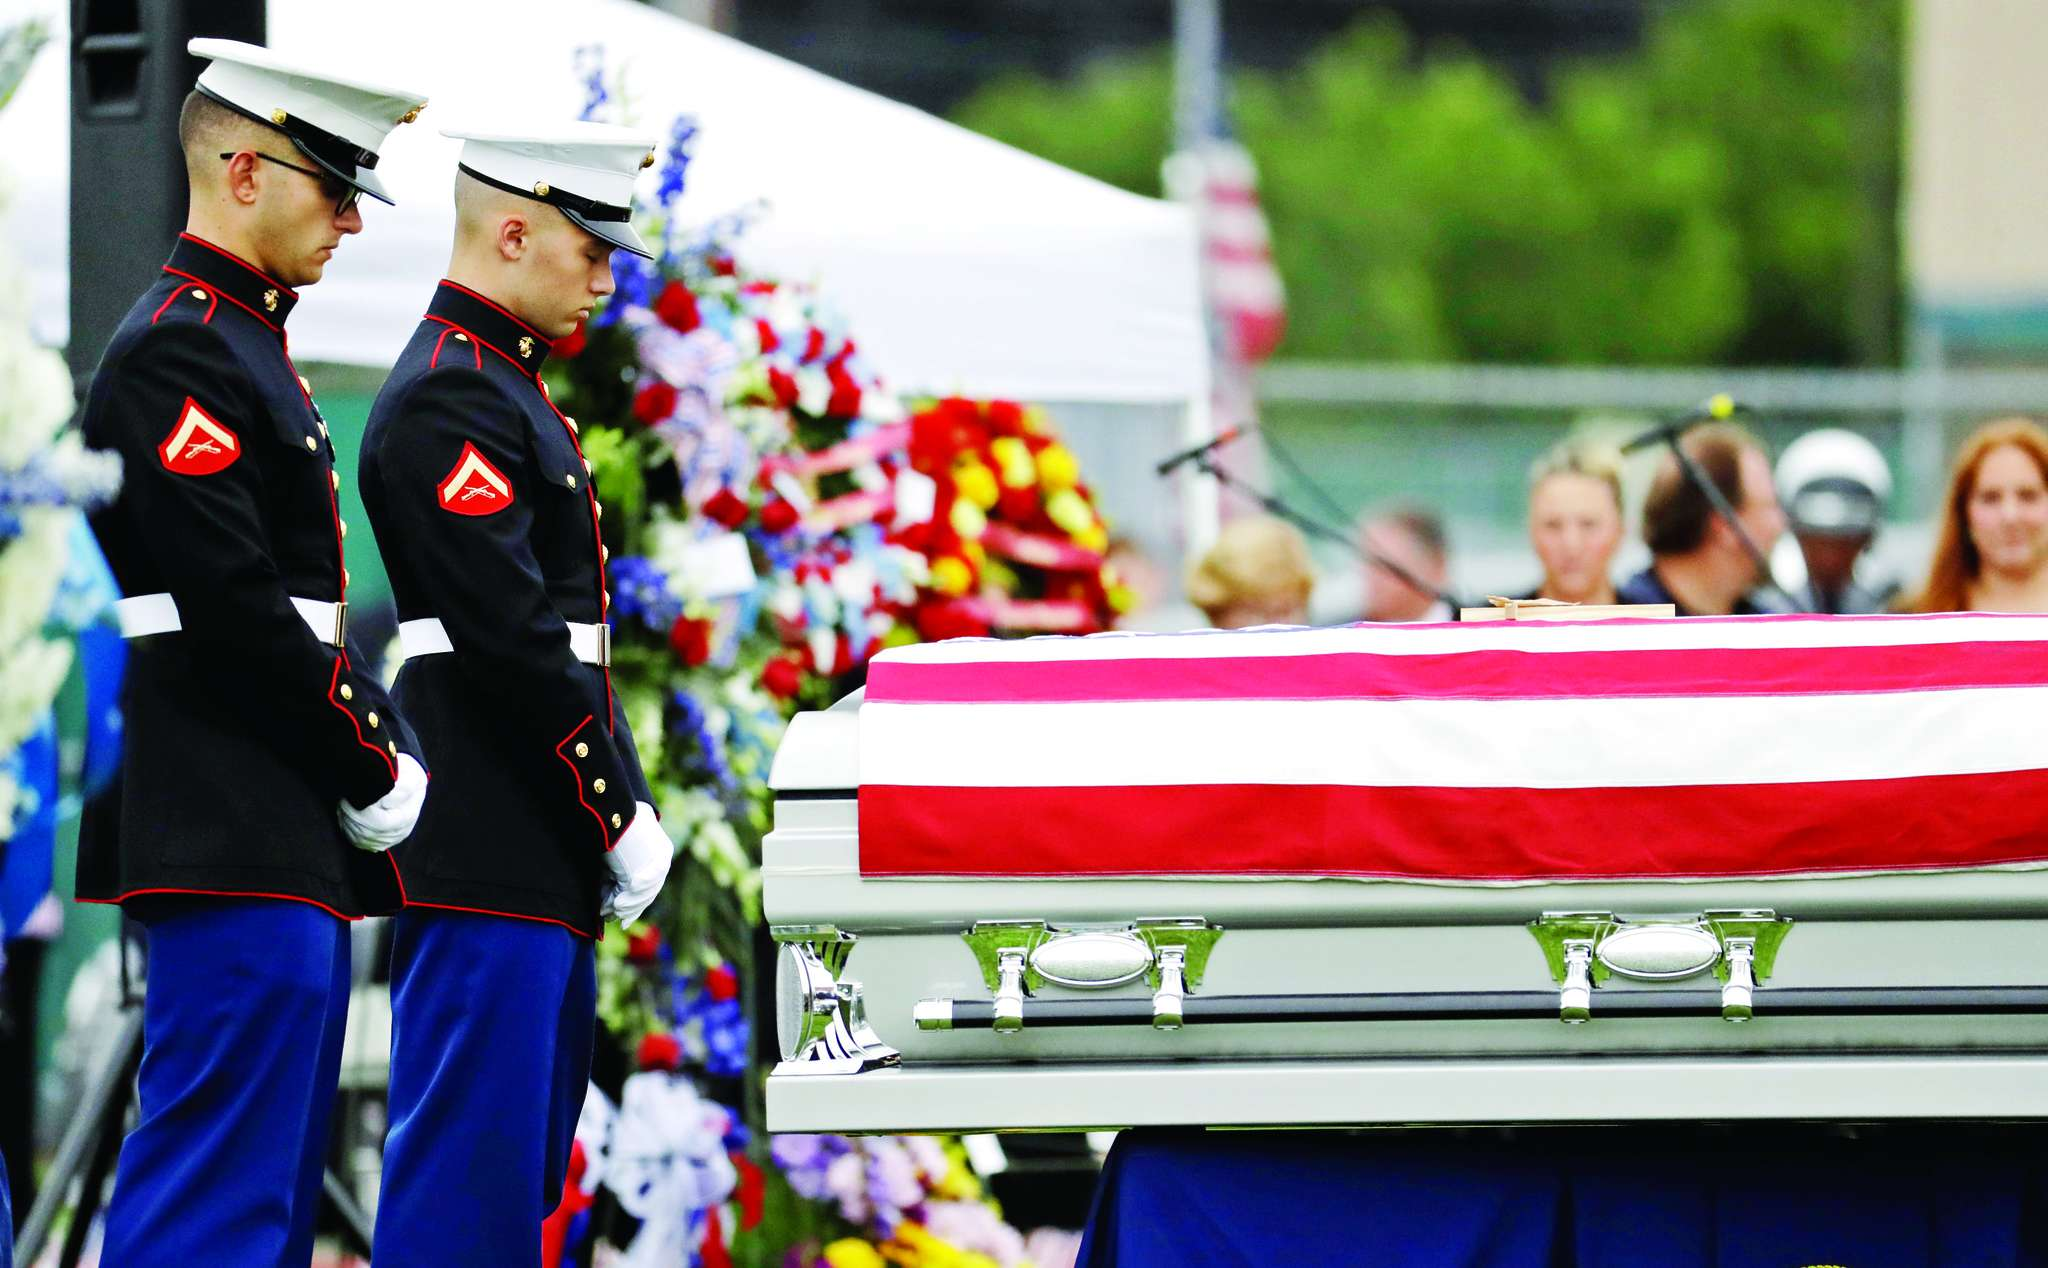 Marines stand guard next to the casket of Cpl. Dan Baldassare in Colts Neck, N.J.